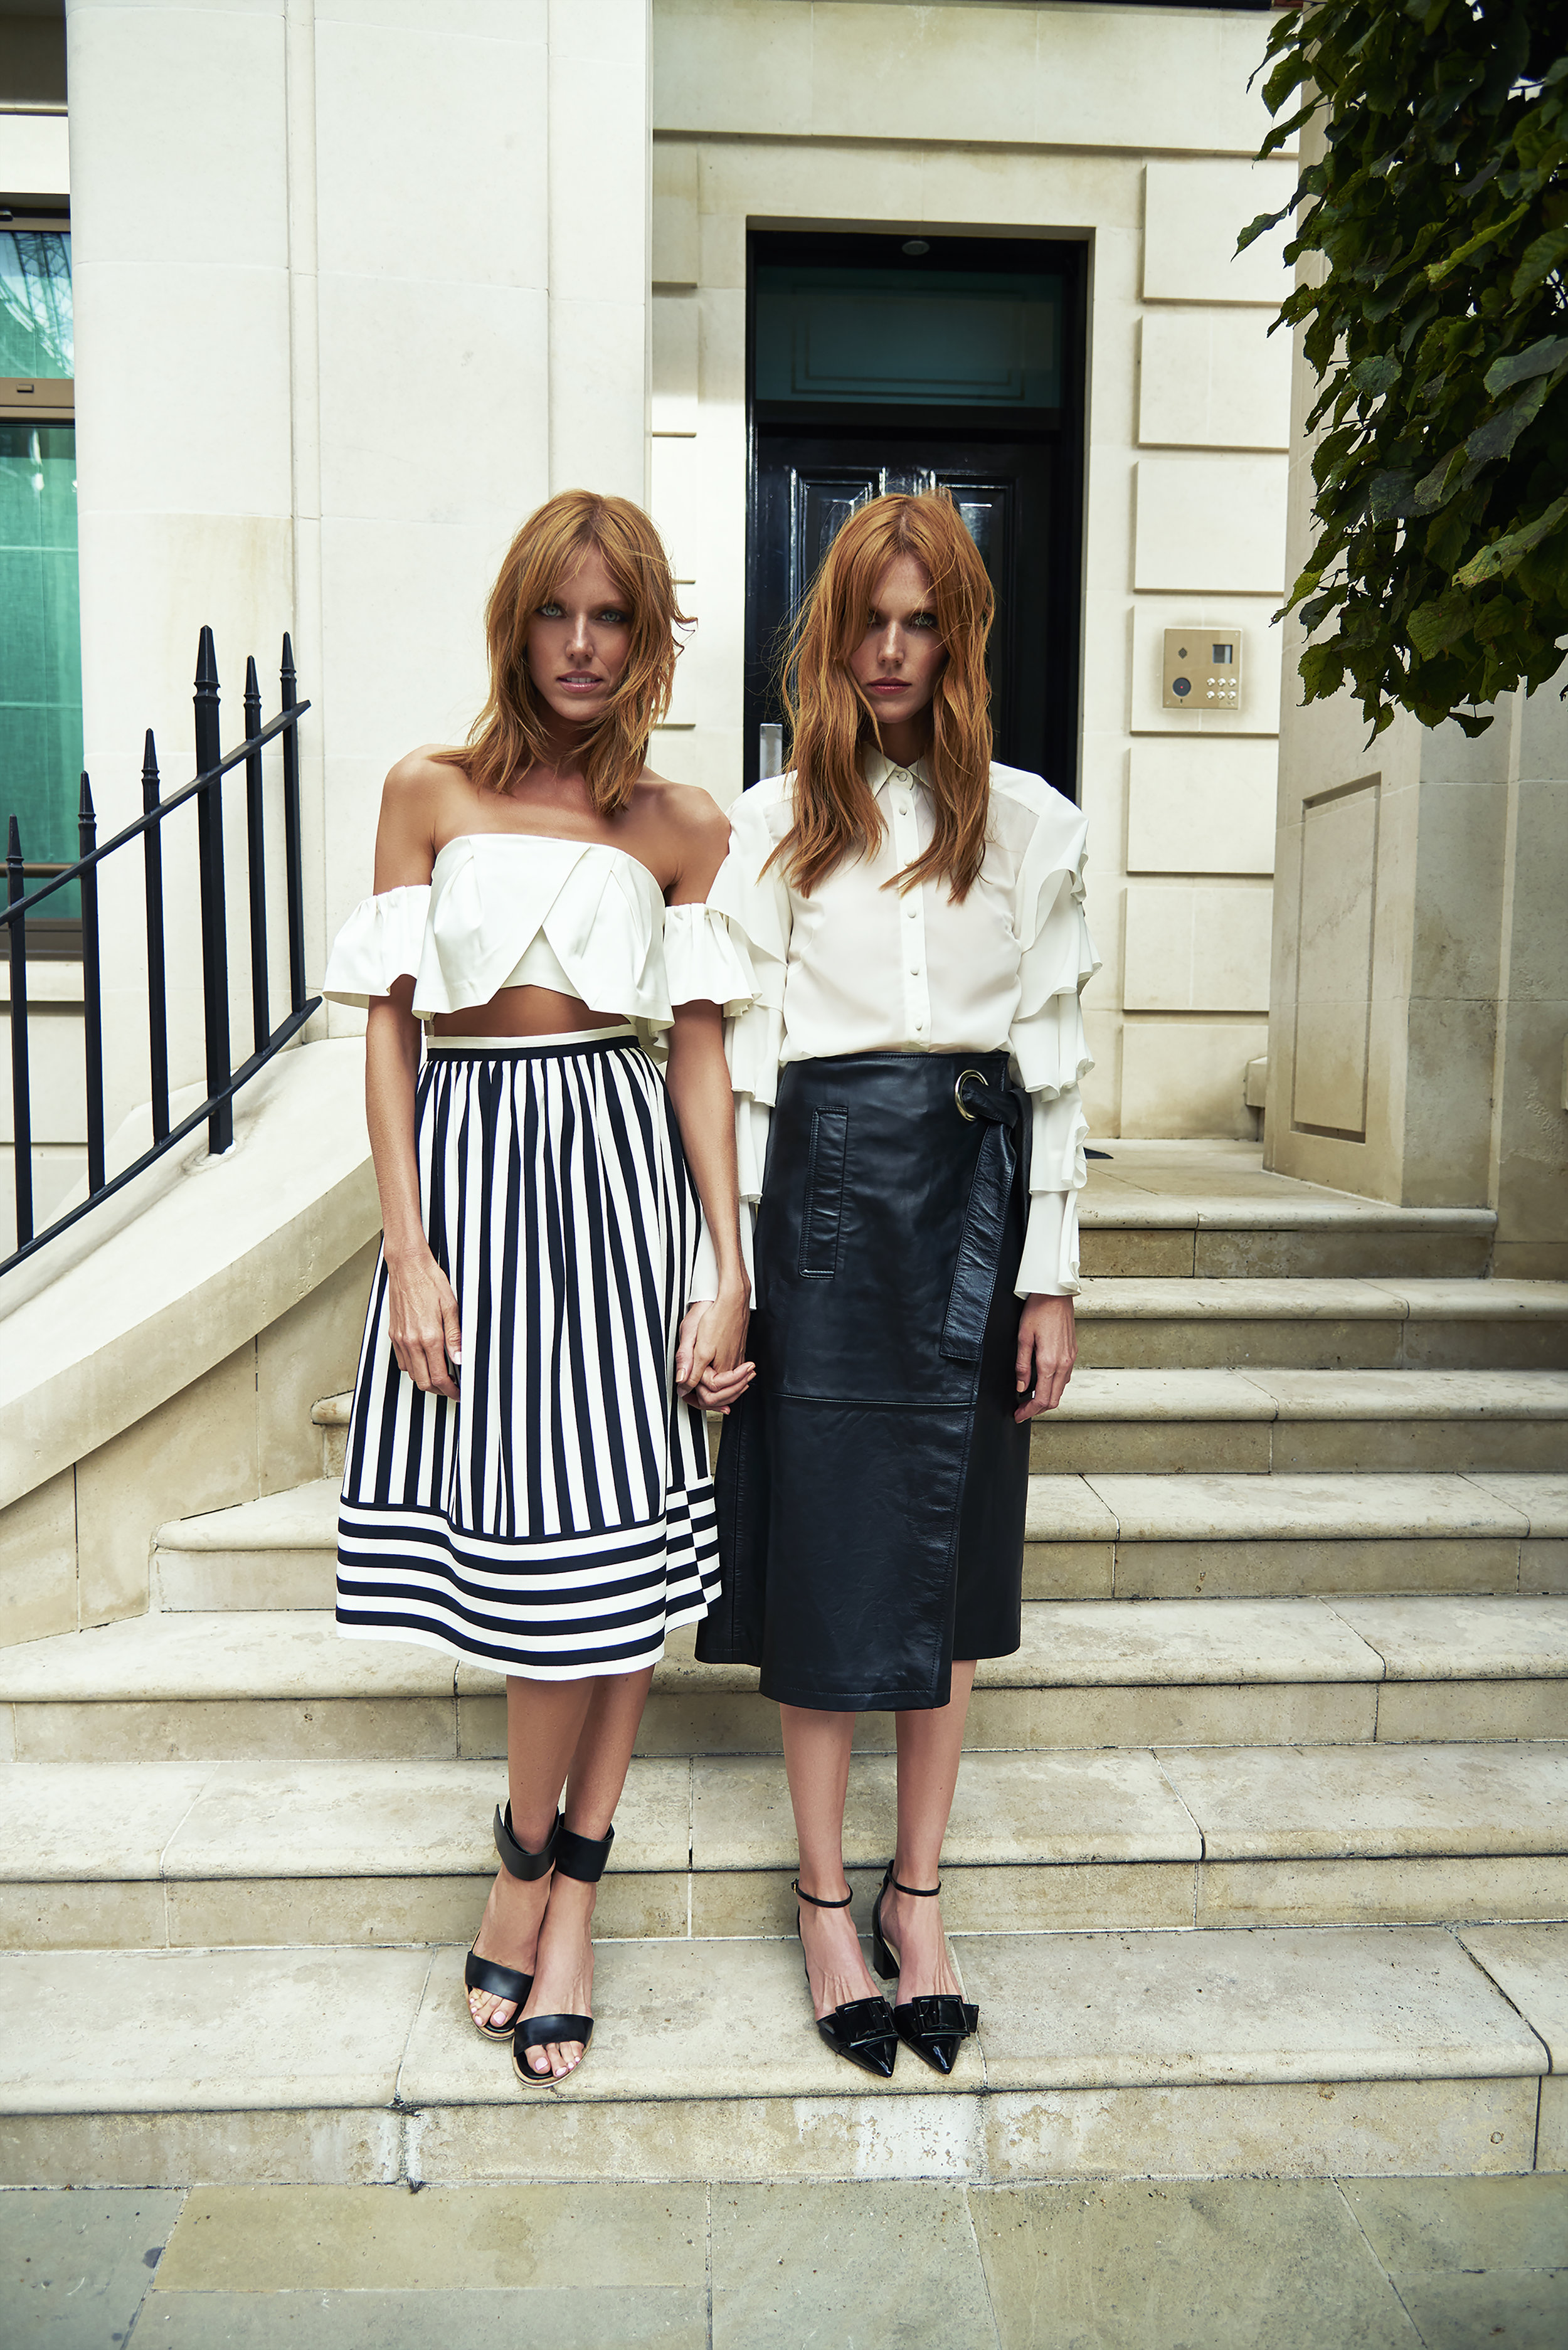 Alice wears: Top  Kendall and Kylie ,Skirt  Topshop ,Shoes  ASOS White    Caroline wears: Shirt  Lost   Ink ,Skirt  Whistles ,Shoes  ASOS